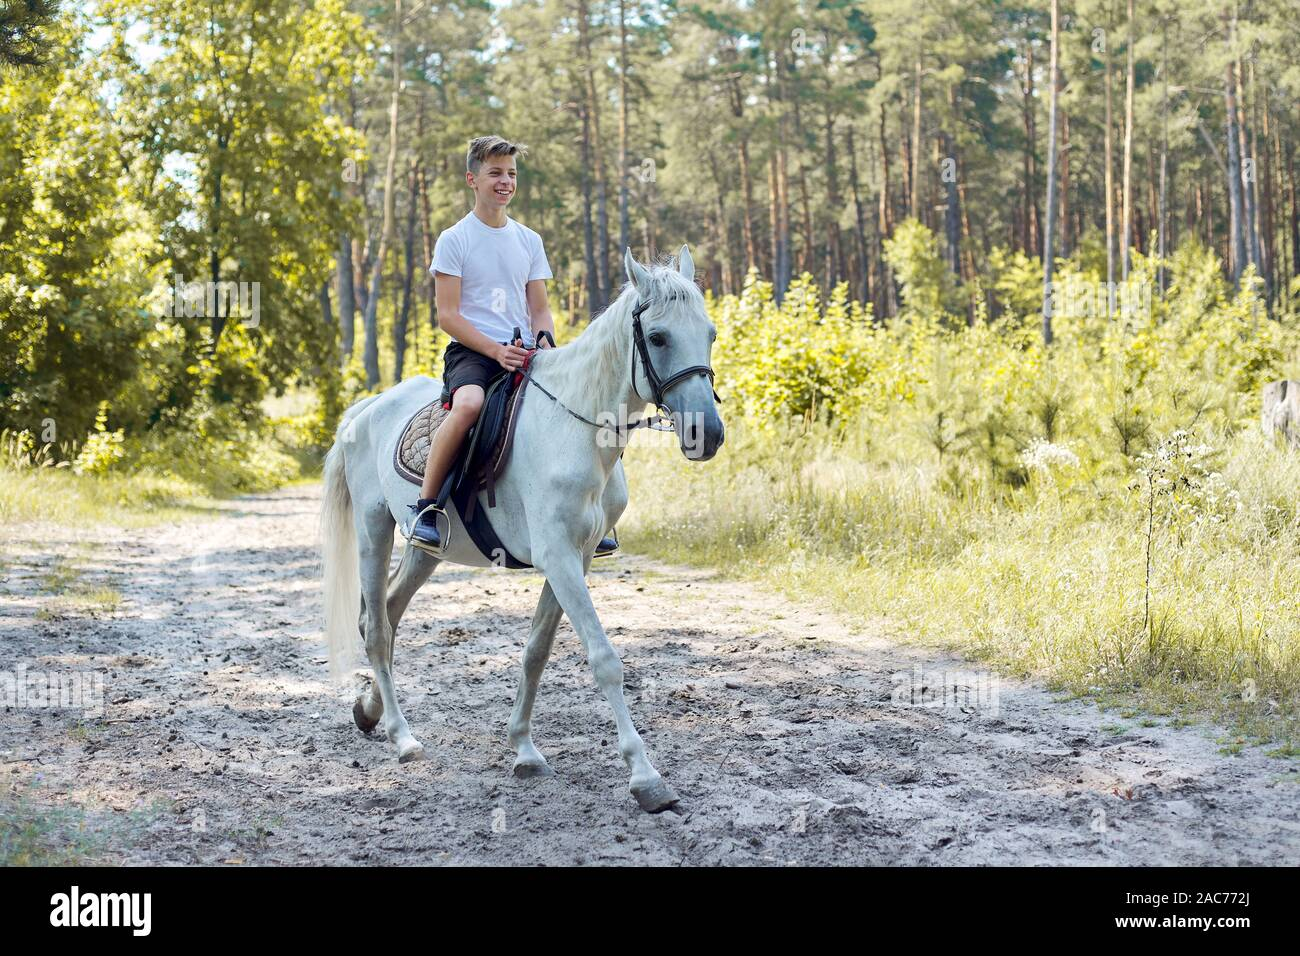 Horse Love Teen Boy Horse High Resolution Stock Photography And Images Alamy